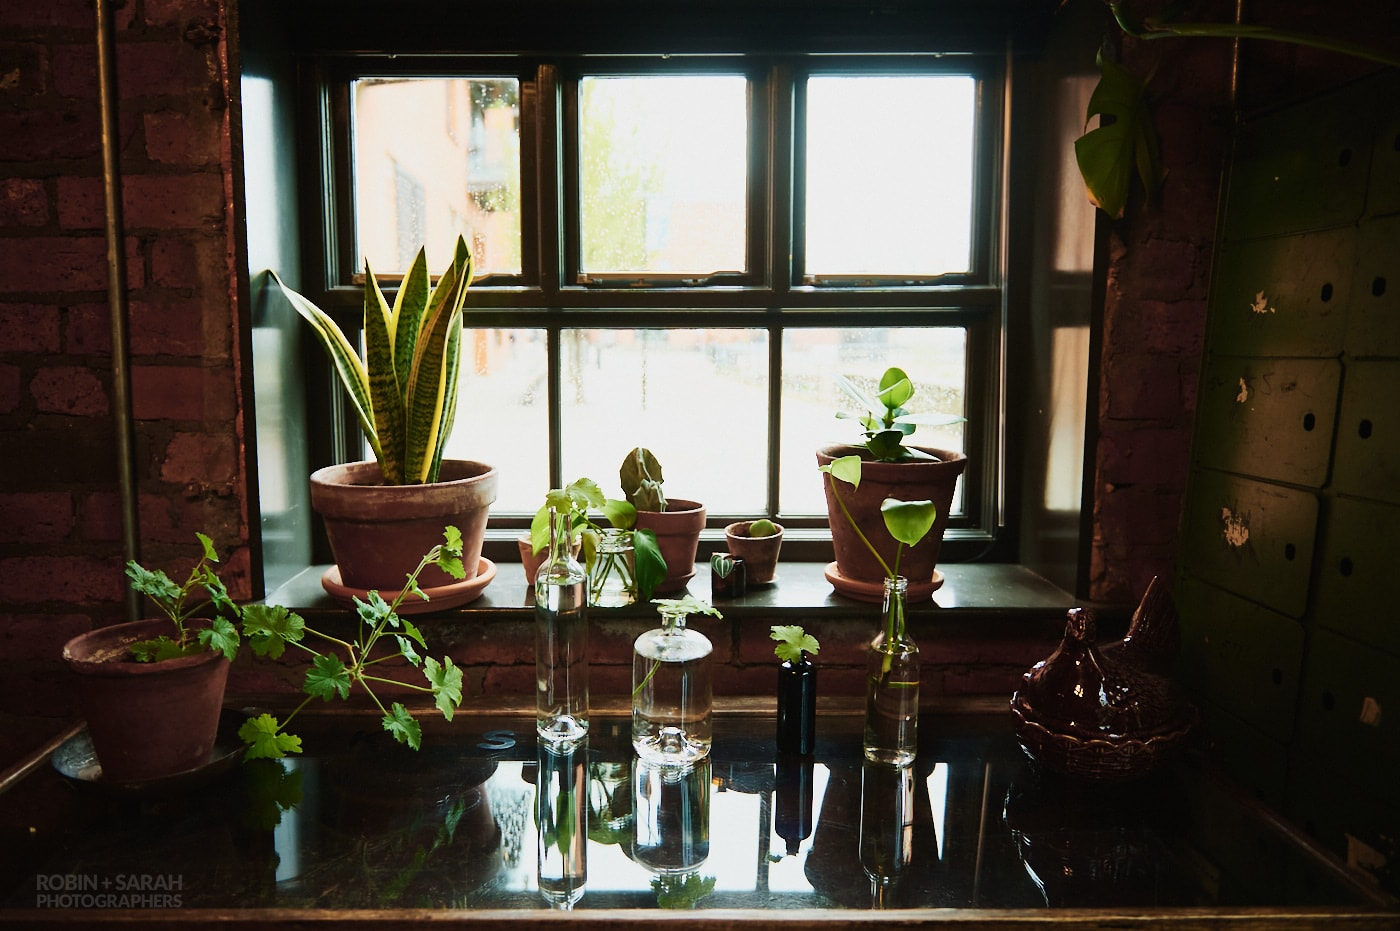 Potted plants in window at The Chimney House